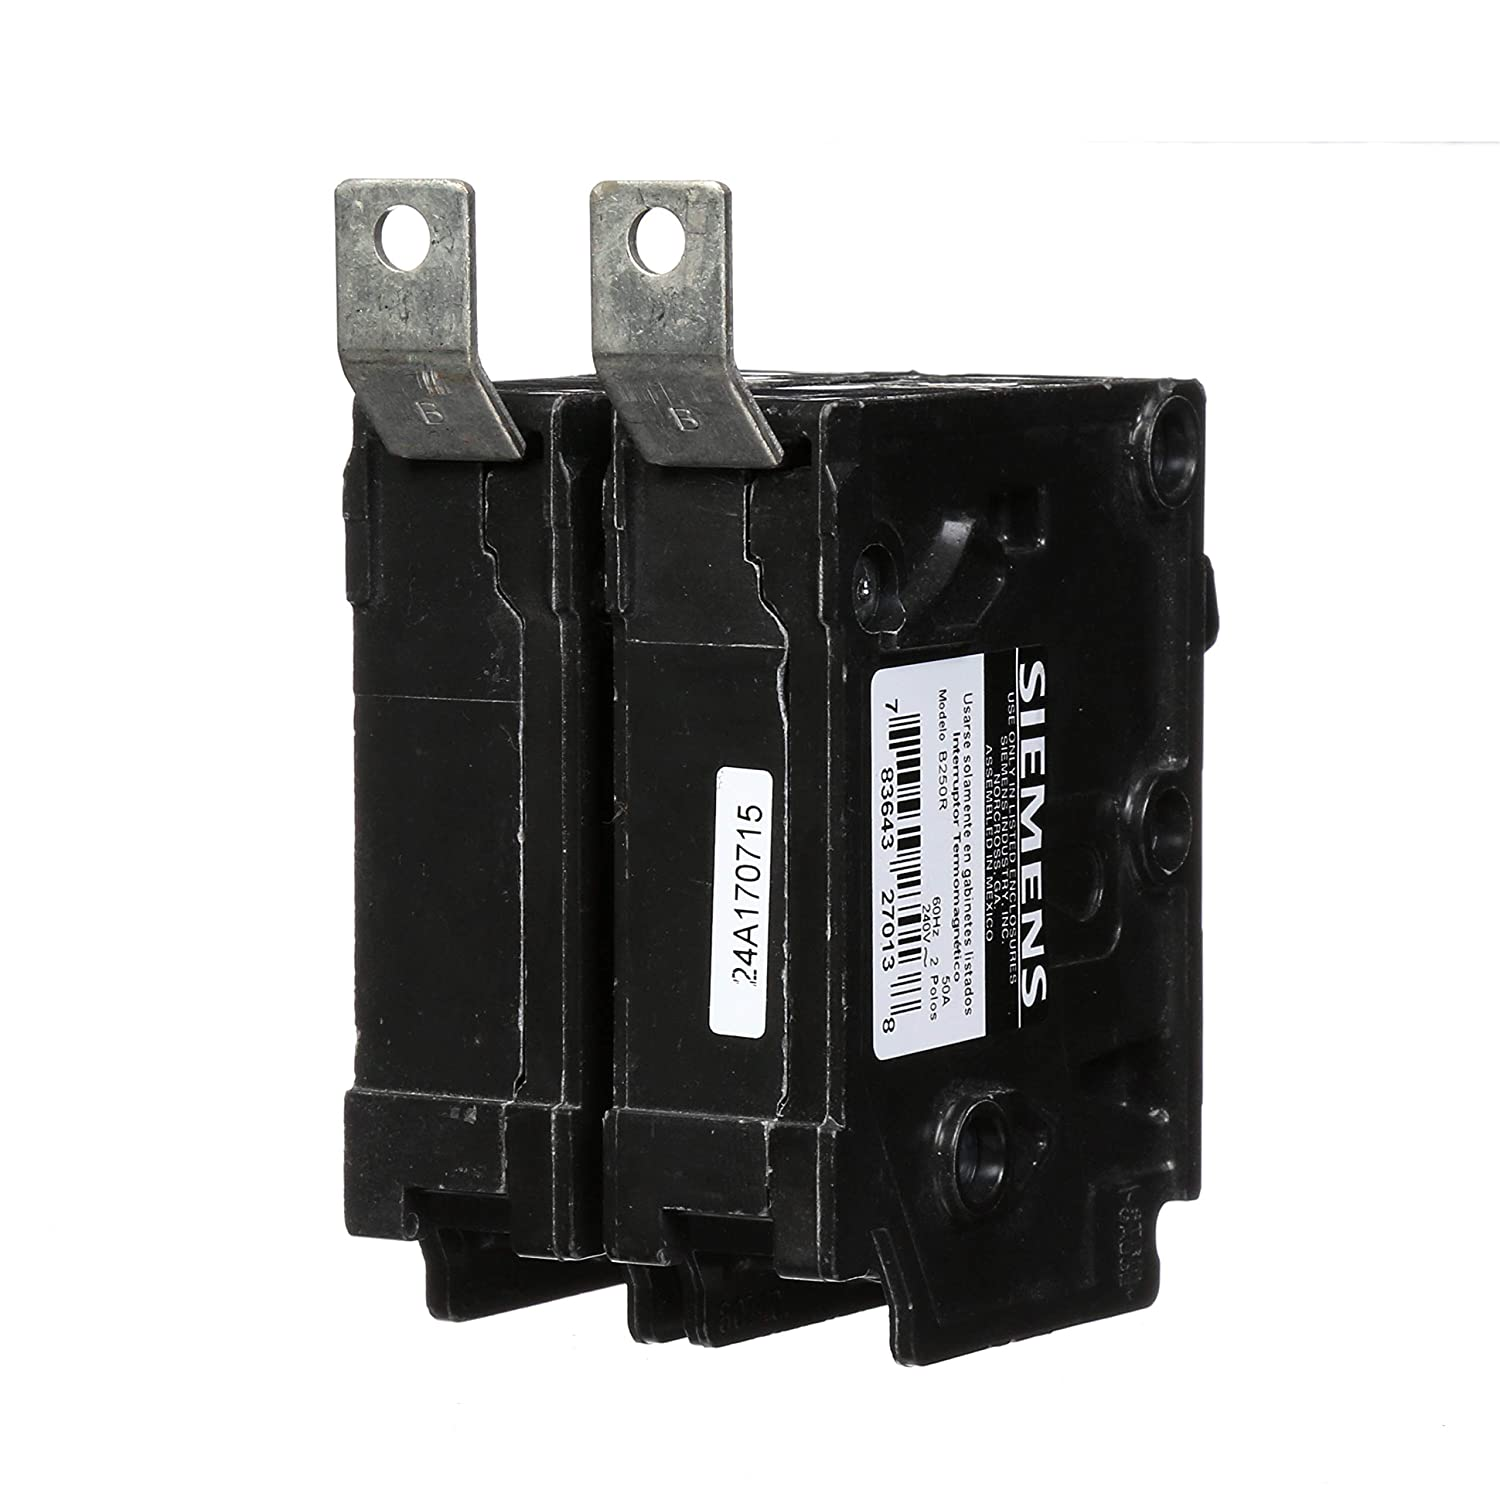 Siemens B250R 50-Amp Double Pole 240-Volt 10KAIC Bolt in Breaker Siemens HI